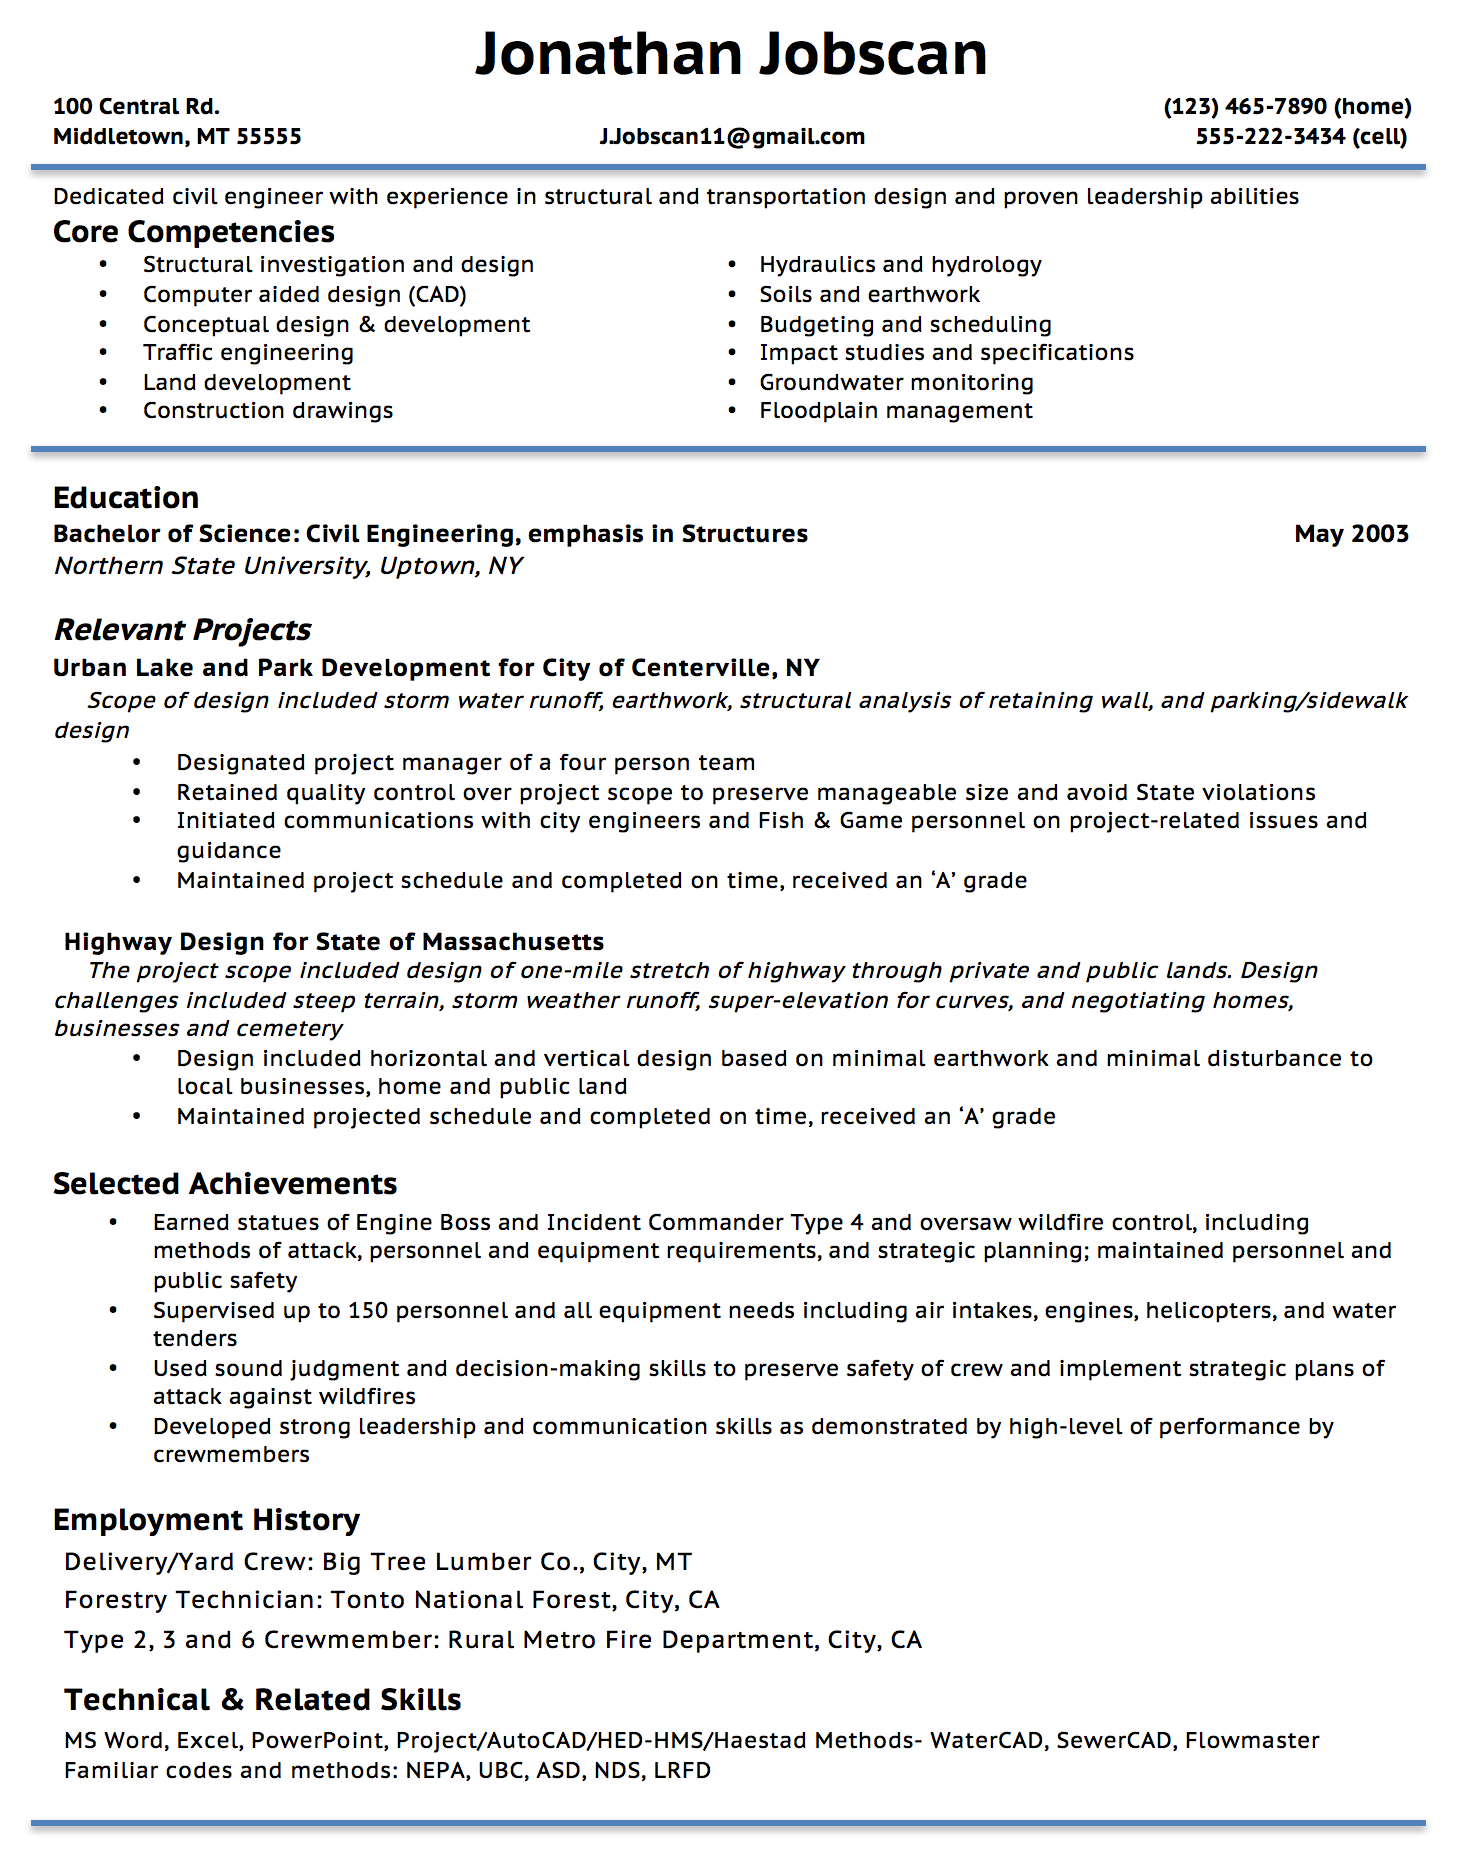 Opposenewapstandardsus  Picturesque Resume Writing Guide  Jobscan With Fair Example Of A Functional Resume Format With Awesome Sample Resume Download Also Customer Service Objective For Resume In Addition Healthcare Resumes And Career Change Resume Sample As Well As Example Of Nursing Resume Additionally Resume Template Google From Jobscanco With Opposenewapstandardsus  Fair Resume Writing Guide  Jobscan With Awesome Example Of A Functional Resume Format And Picturesque Sample Resume Download Also Customer Service Objective For Resume In Addition Healthcare Resumes From Jobscanco